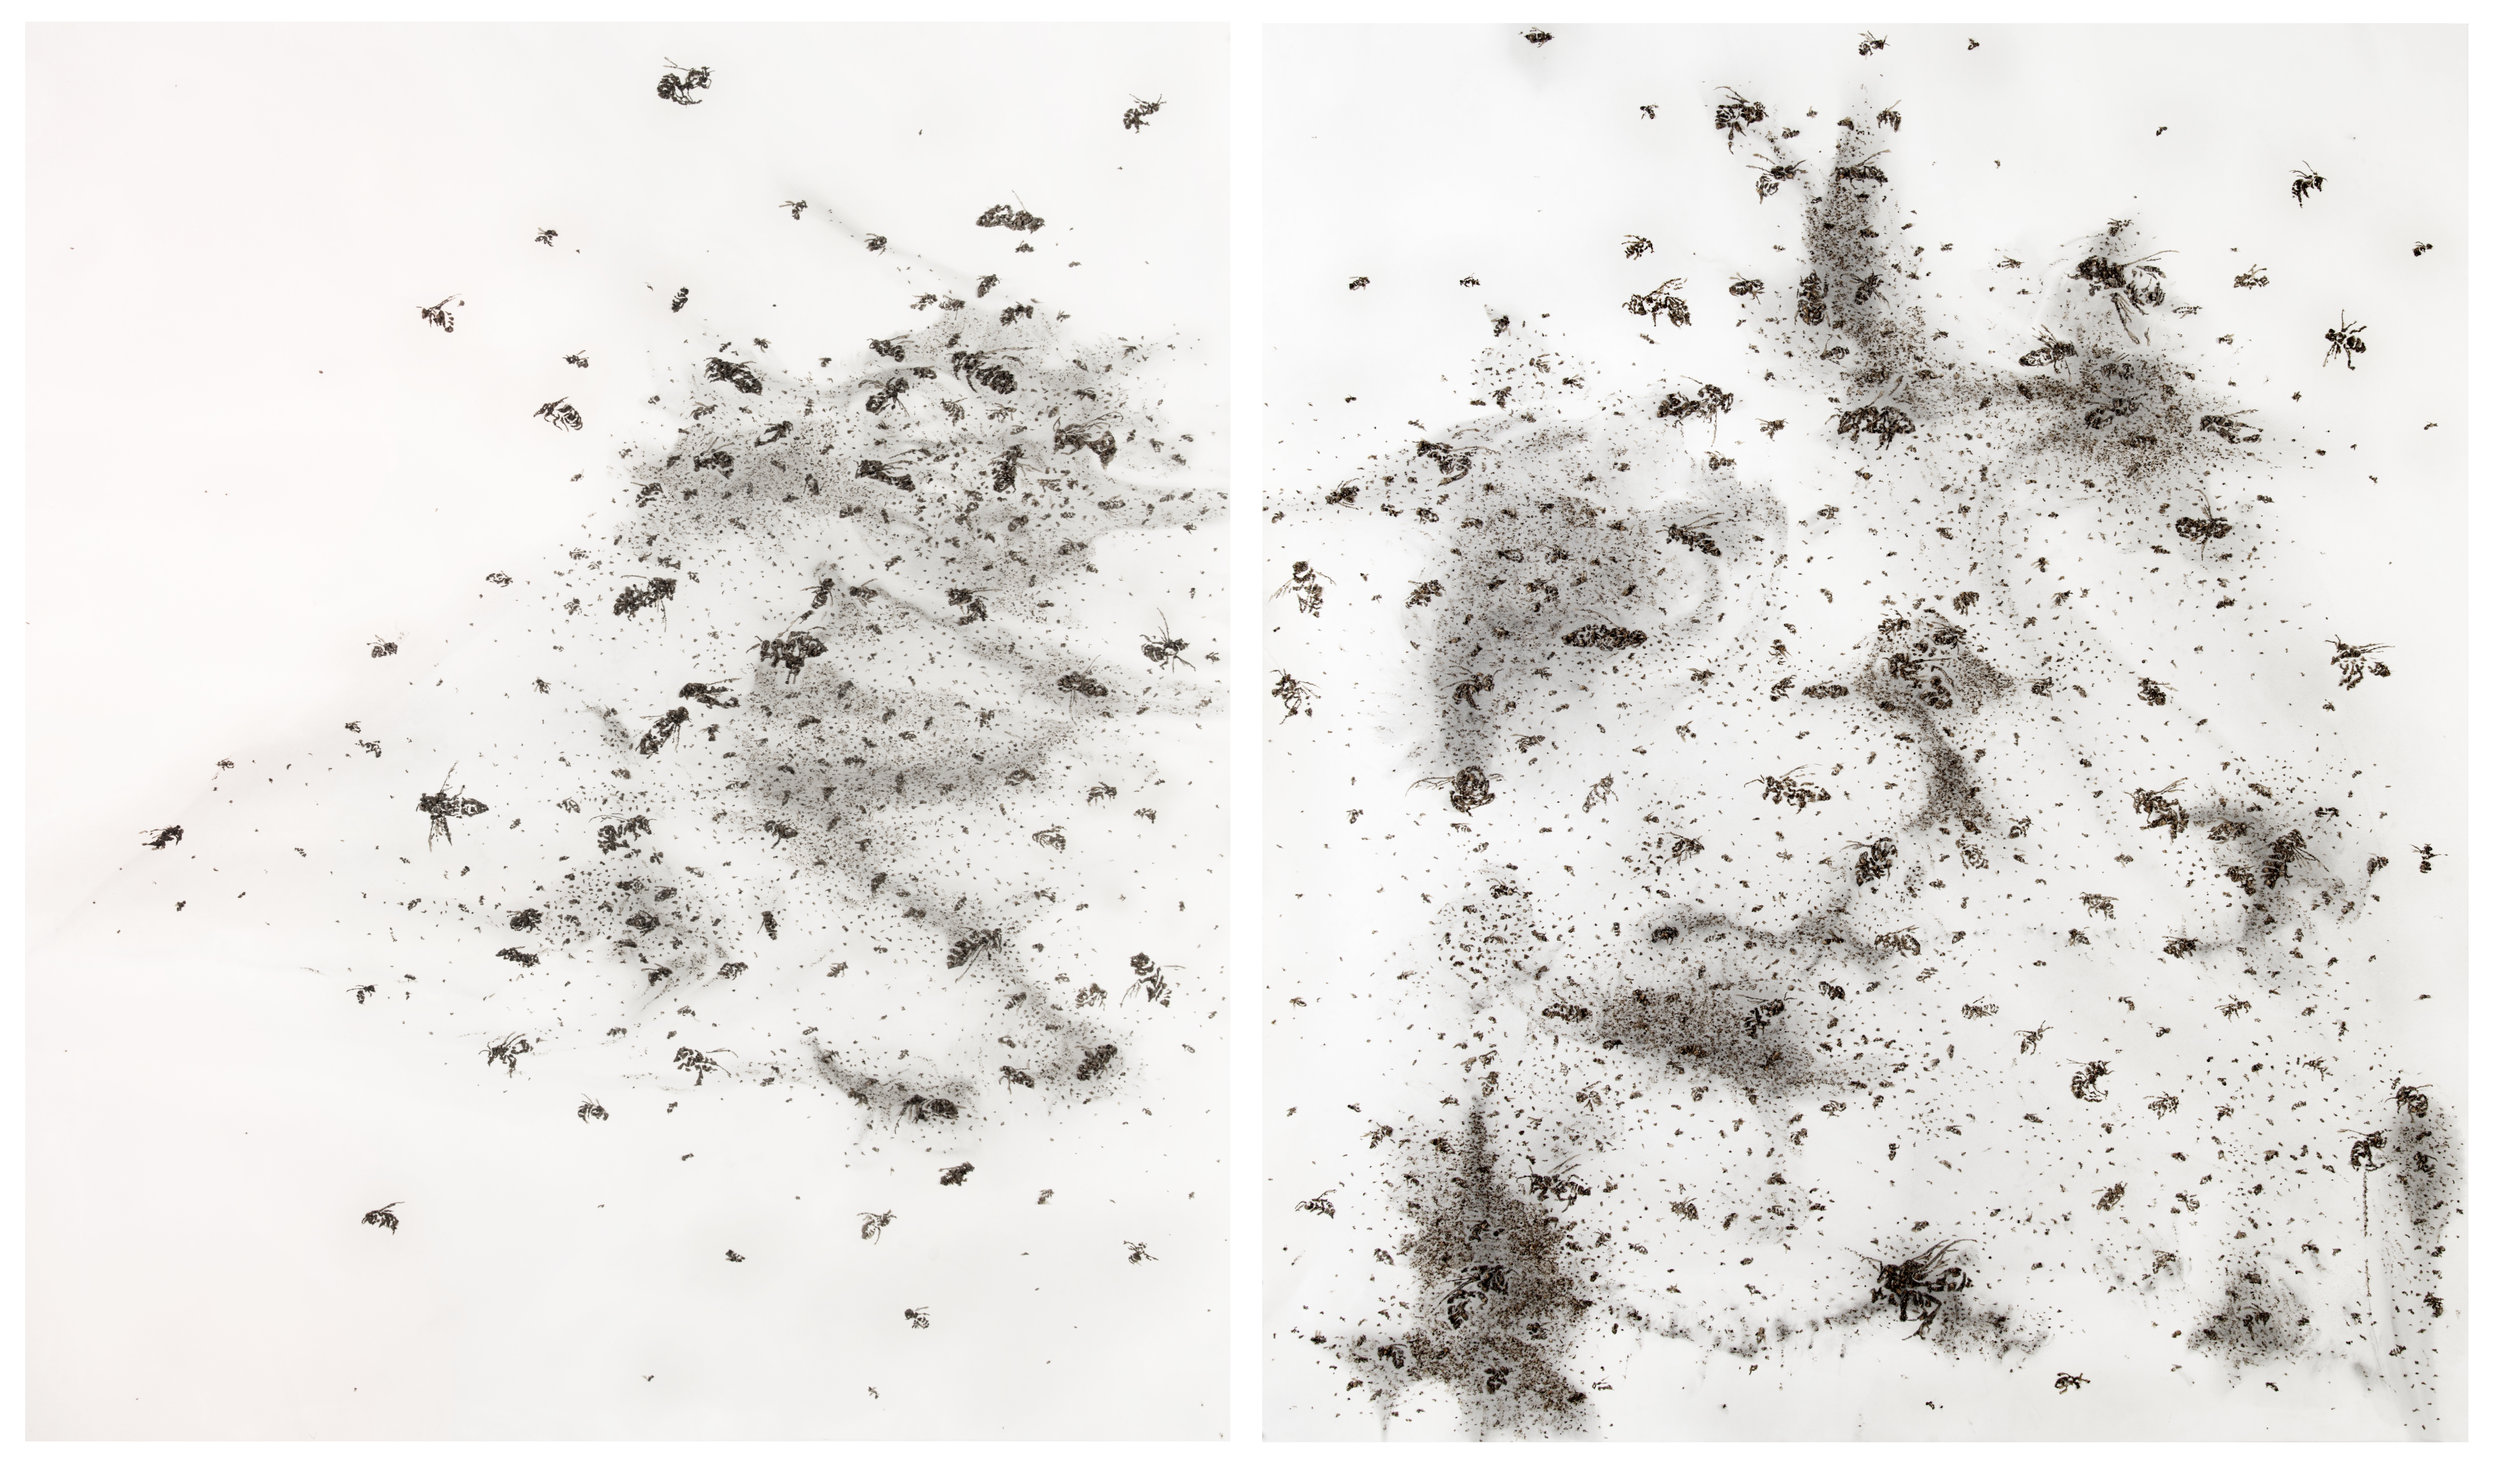 Bees of Bees D1  2012 - 2015  diptych, gum bichromate print with honeybees on paper  50 x 58 inches each panel, 102 x 58 inches